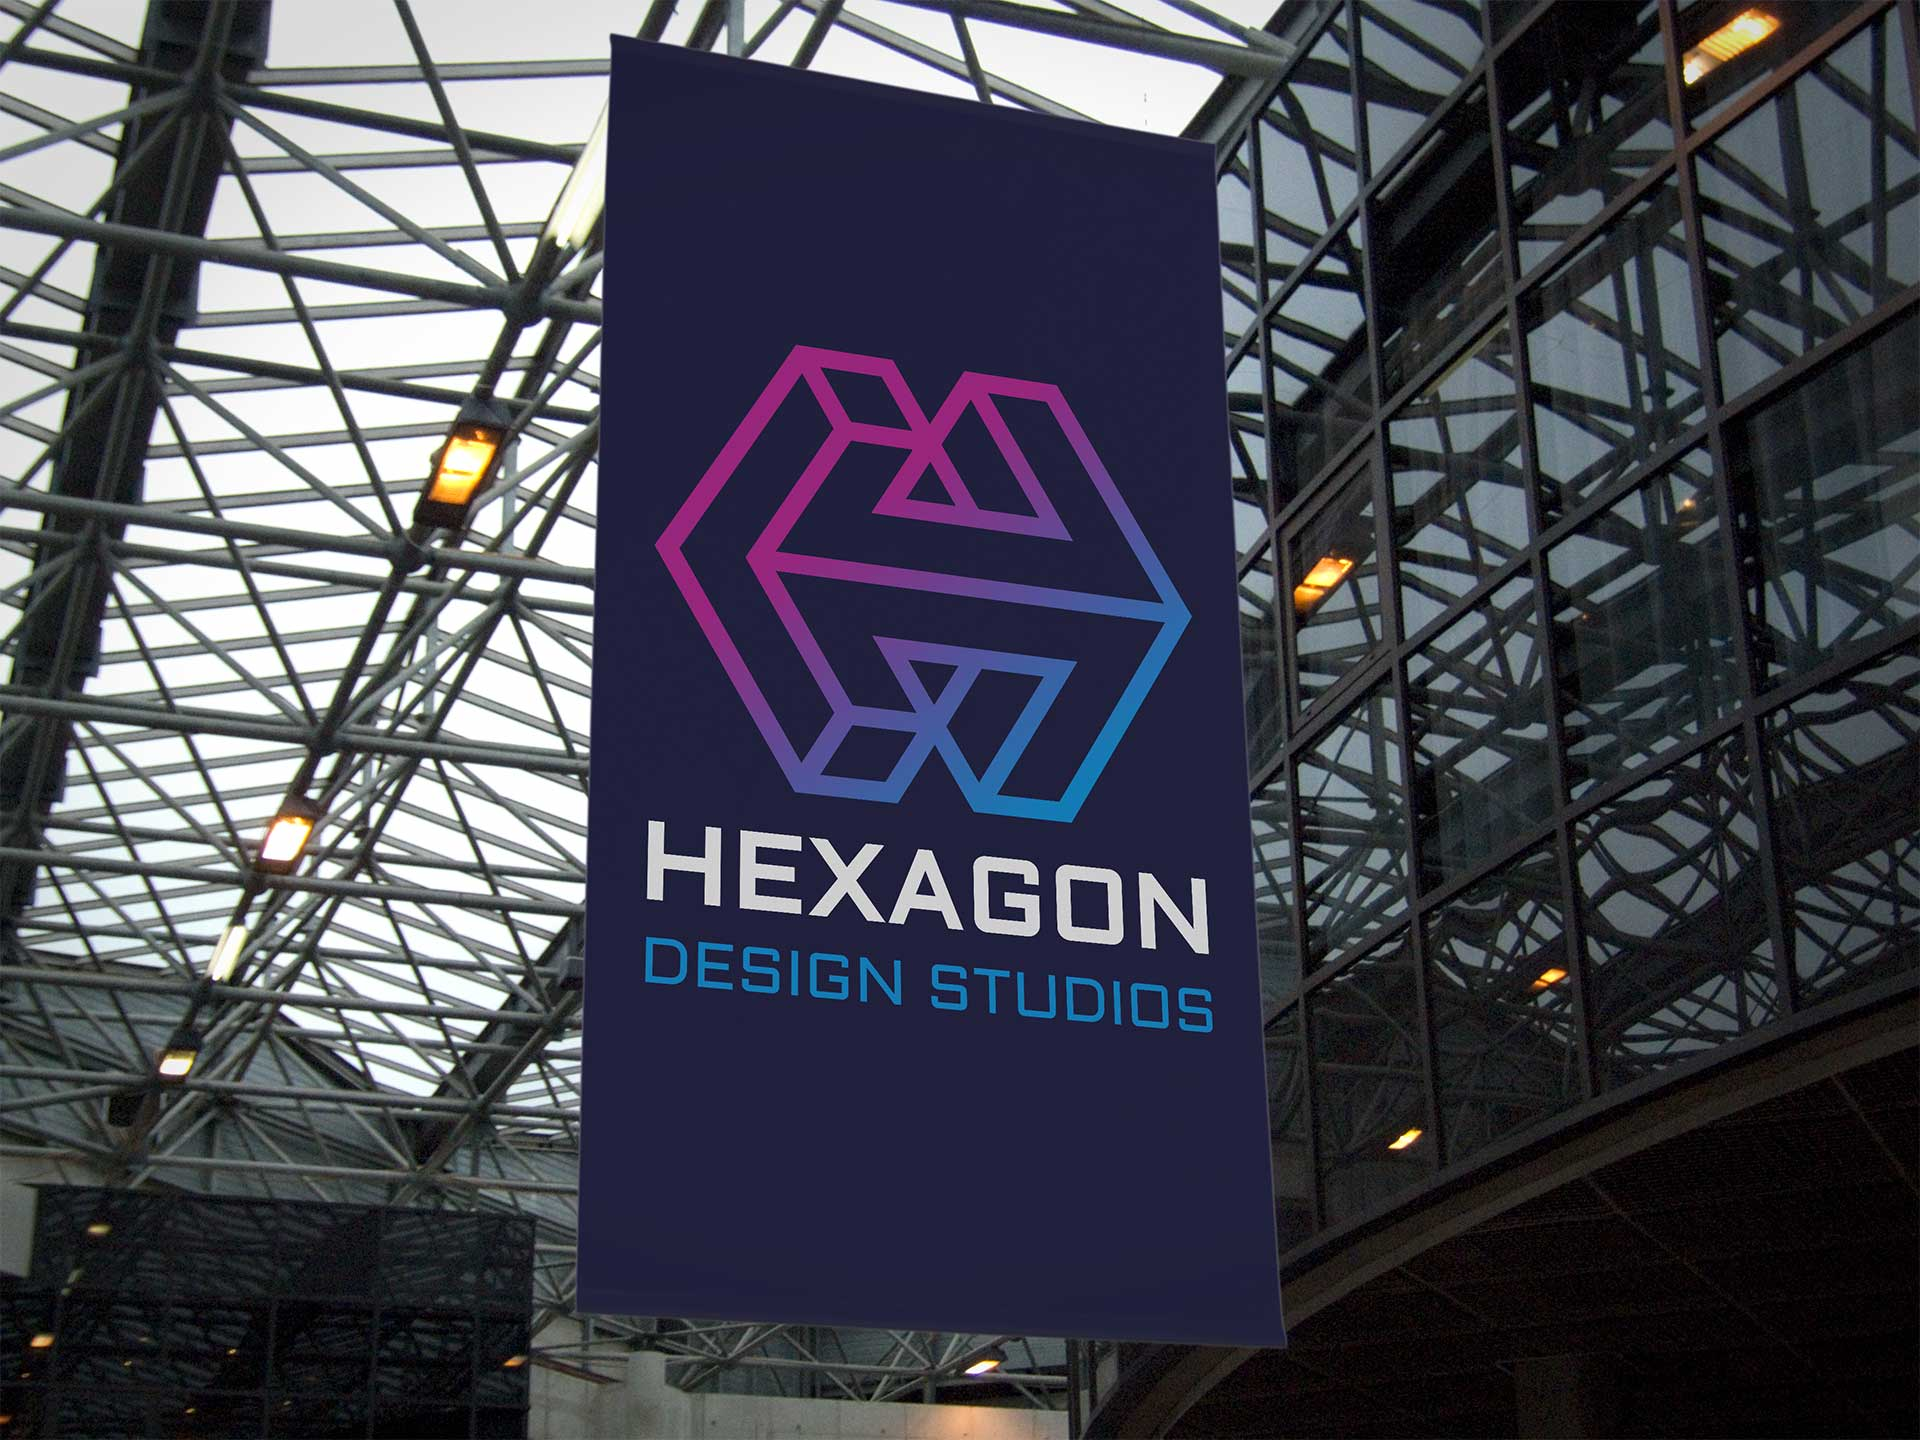 Hexagon Design Studios Logo Design on Display Banner